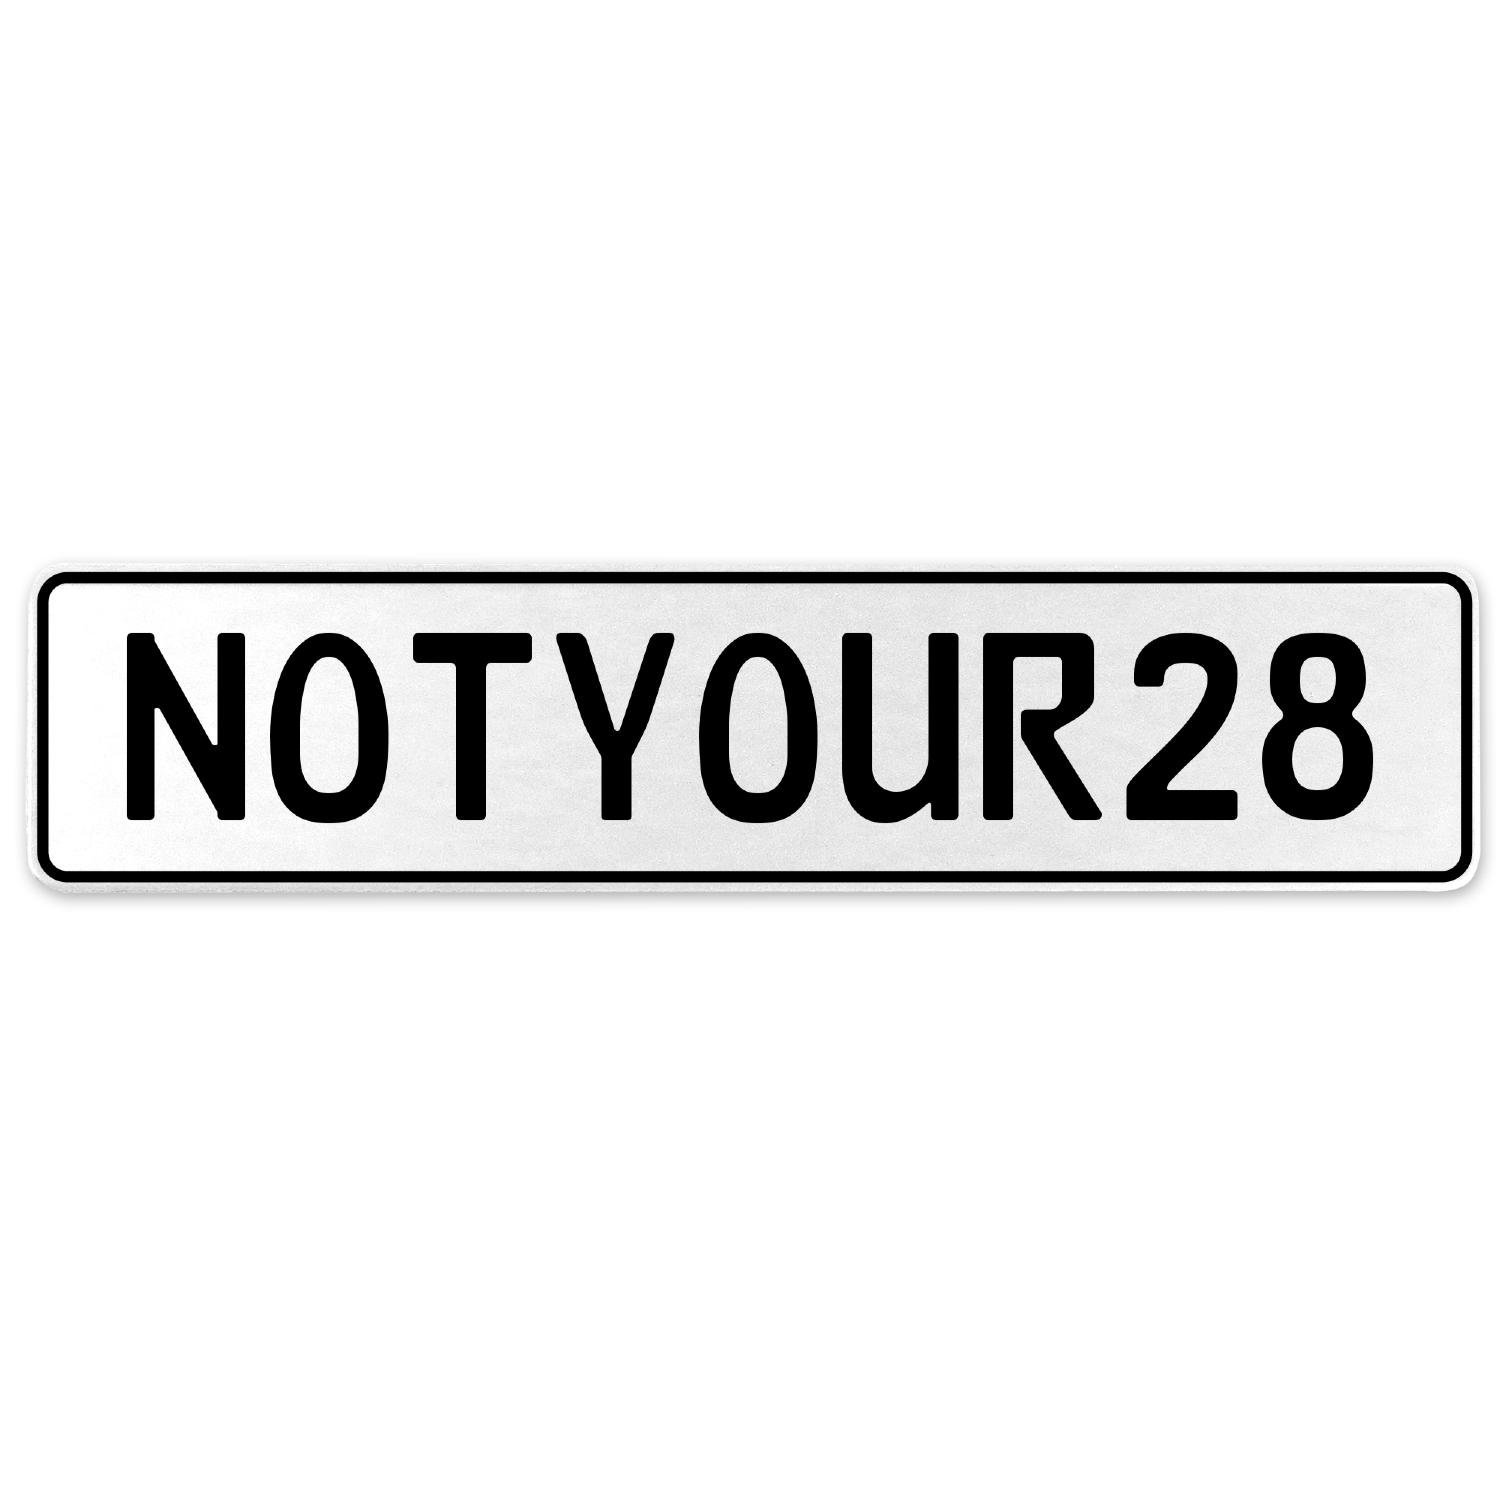 Vintage Parts 555417 NOTYOUR28 White Stamped Aluminum European License Plate